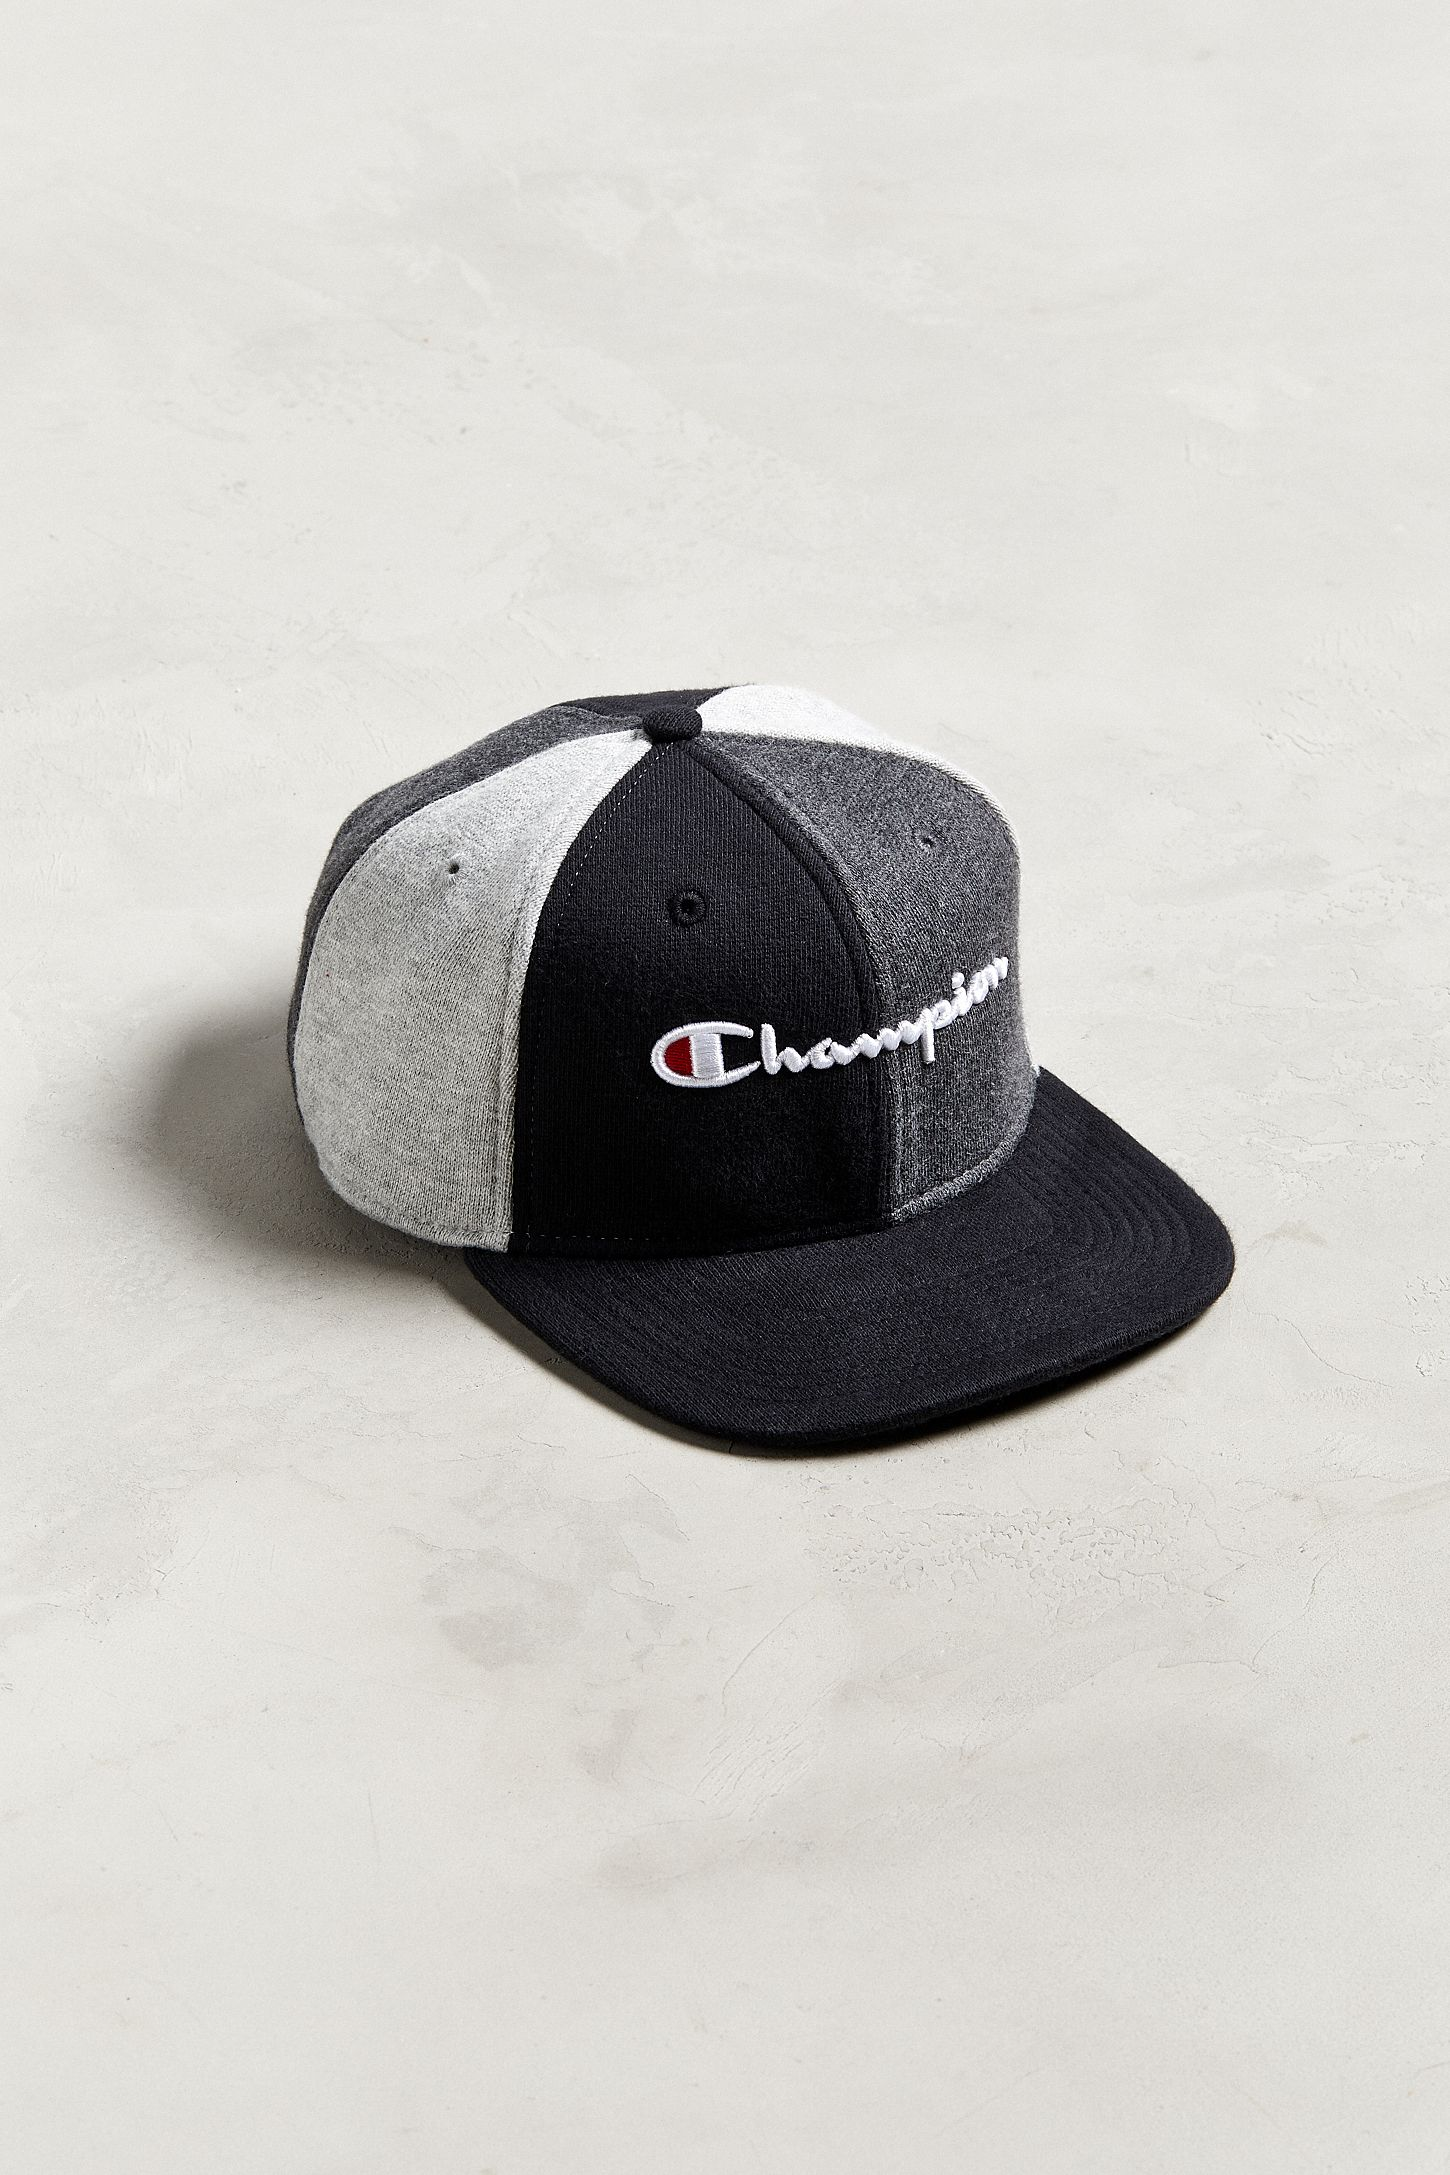 c1a9290540ad6 Champion Reverse Weave Baseball Hat. Tap image to zoom. Hover to zoom.  Double Tap to Zoom